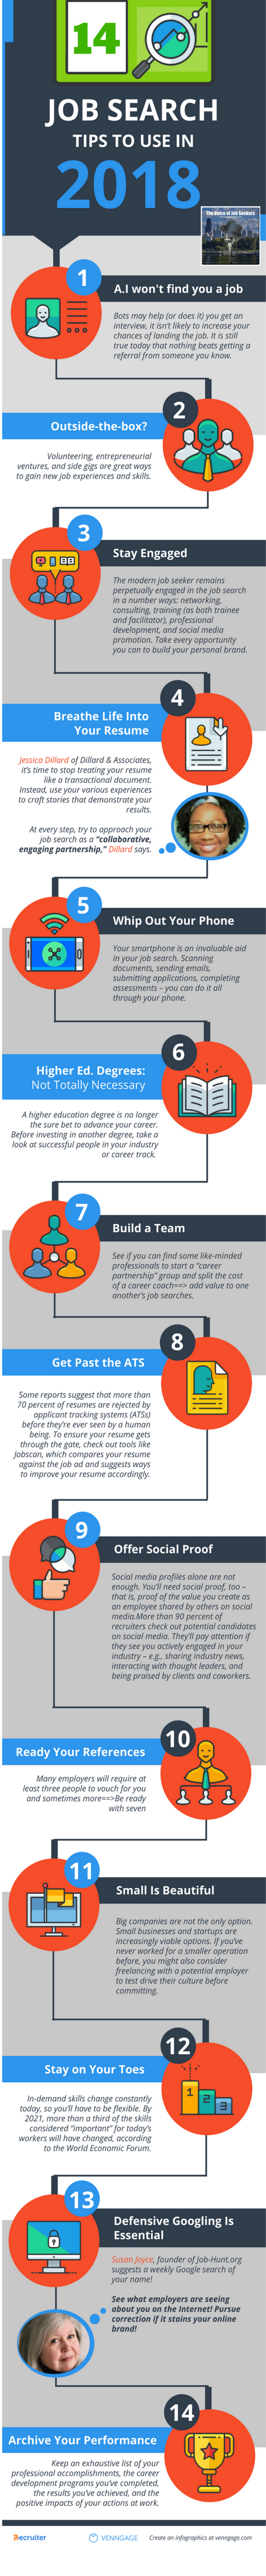 14 Job Search Tips To Master In 2018 The Voice Of Job Seekers